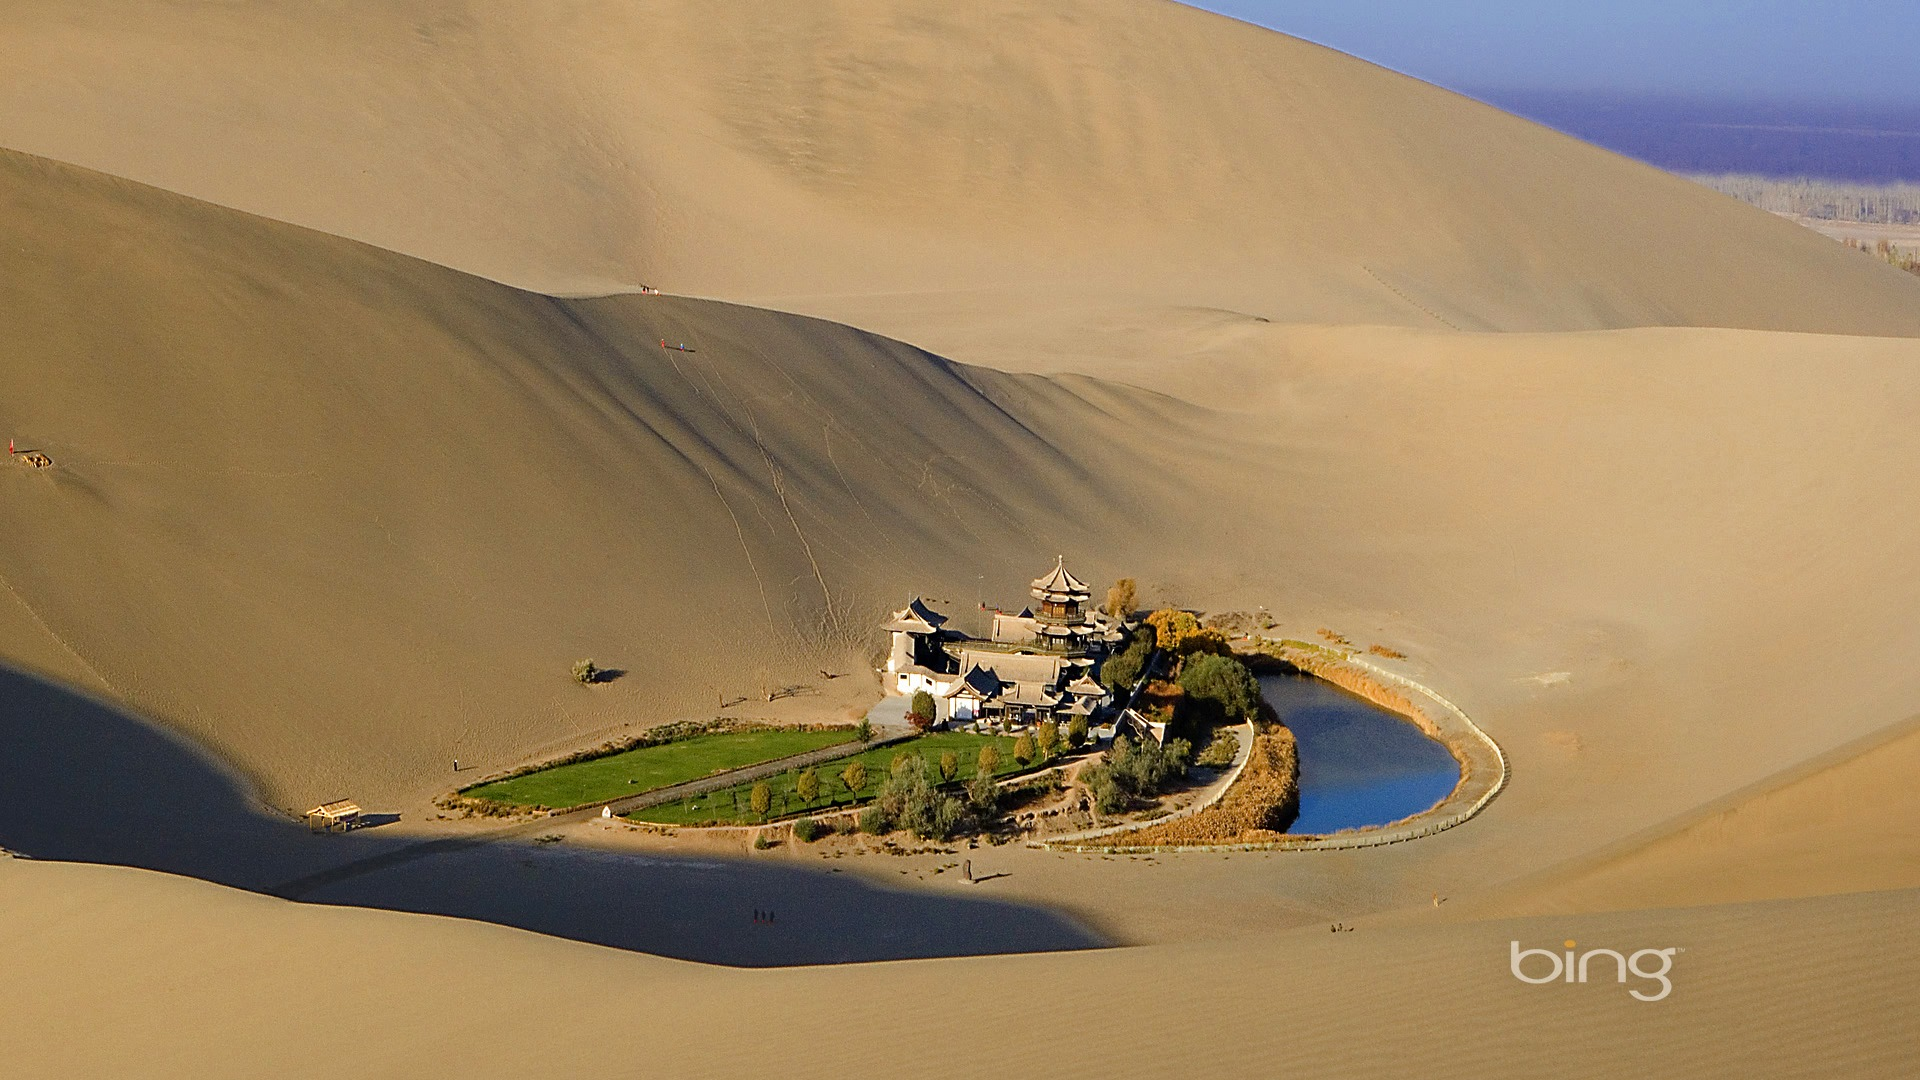 ... in Dunhuang Silk Road-Bing Wallpaper - 1920x1080 wallpaper download